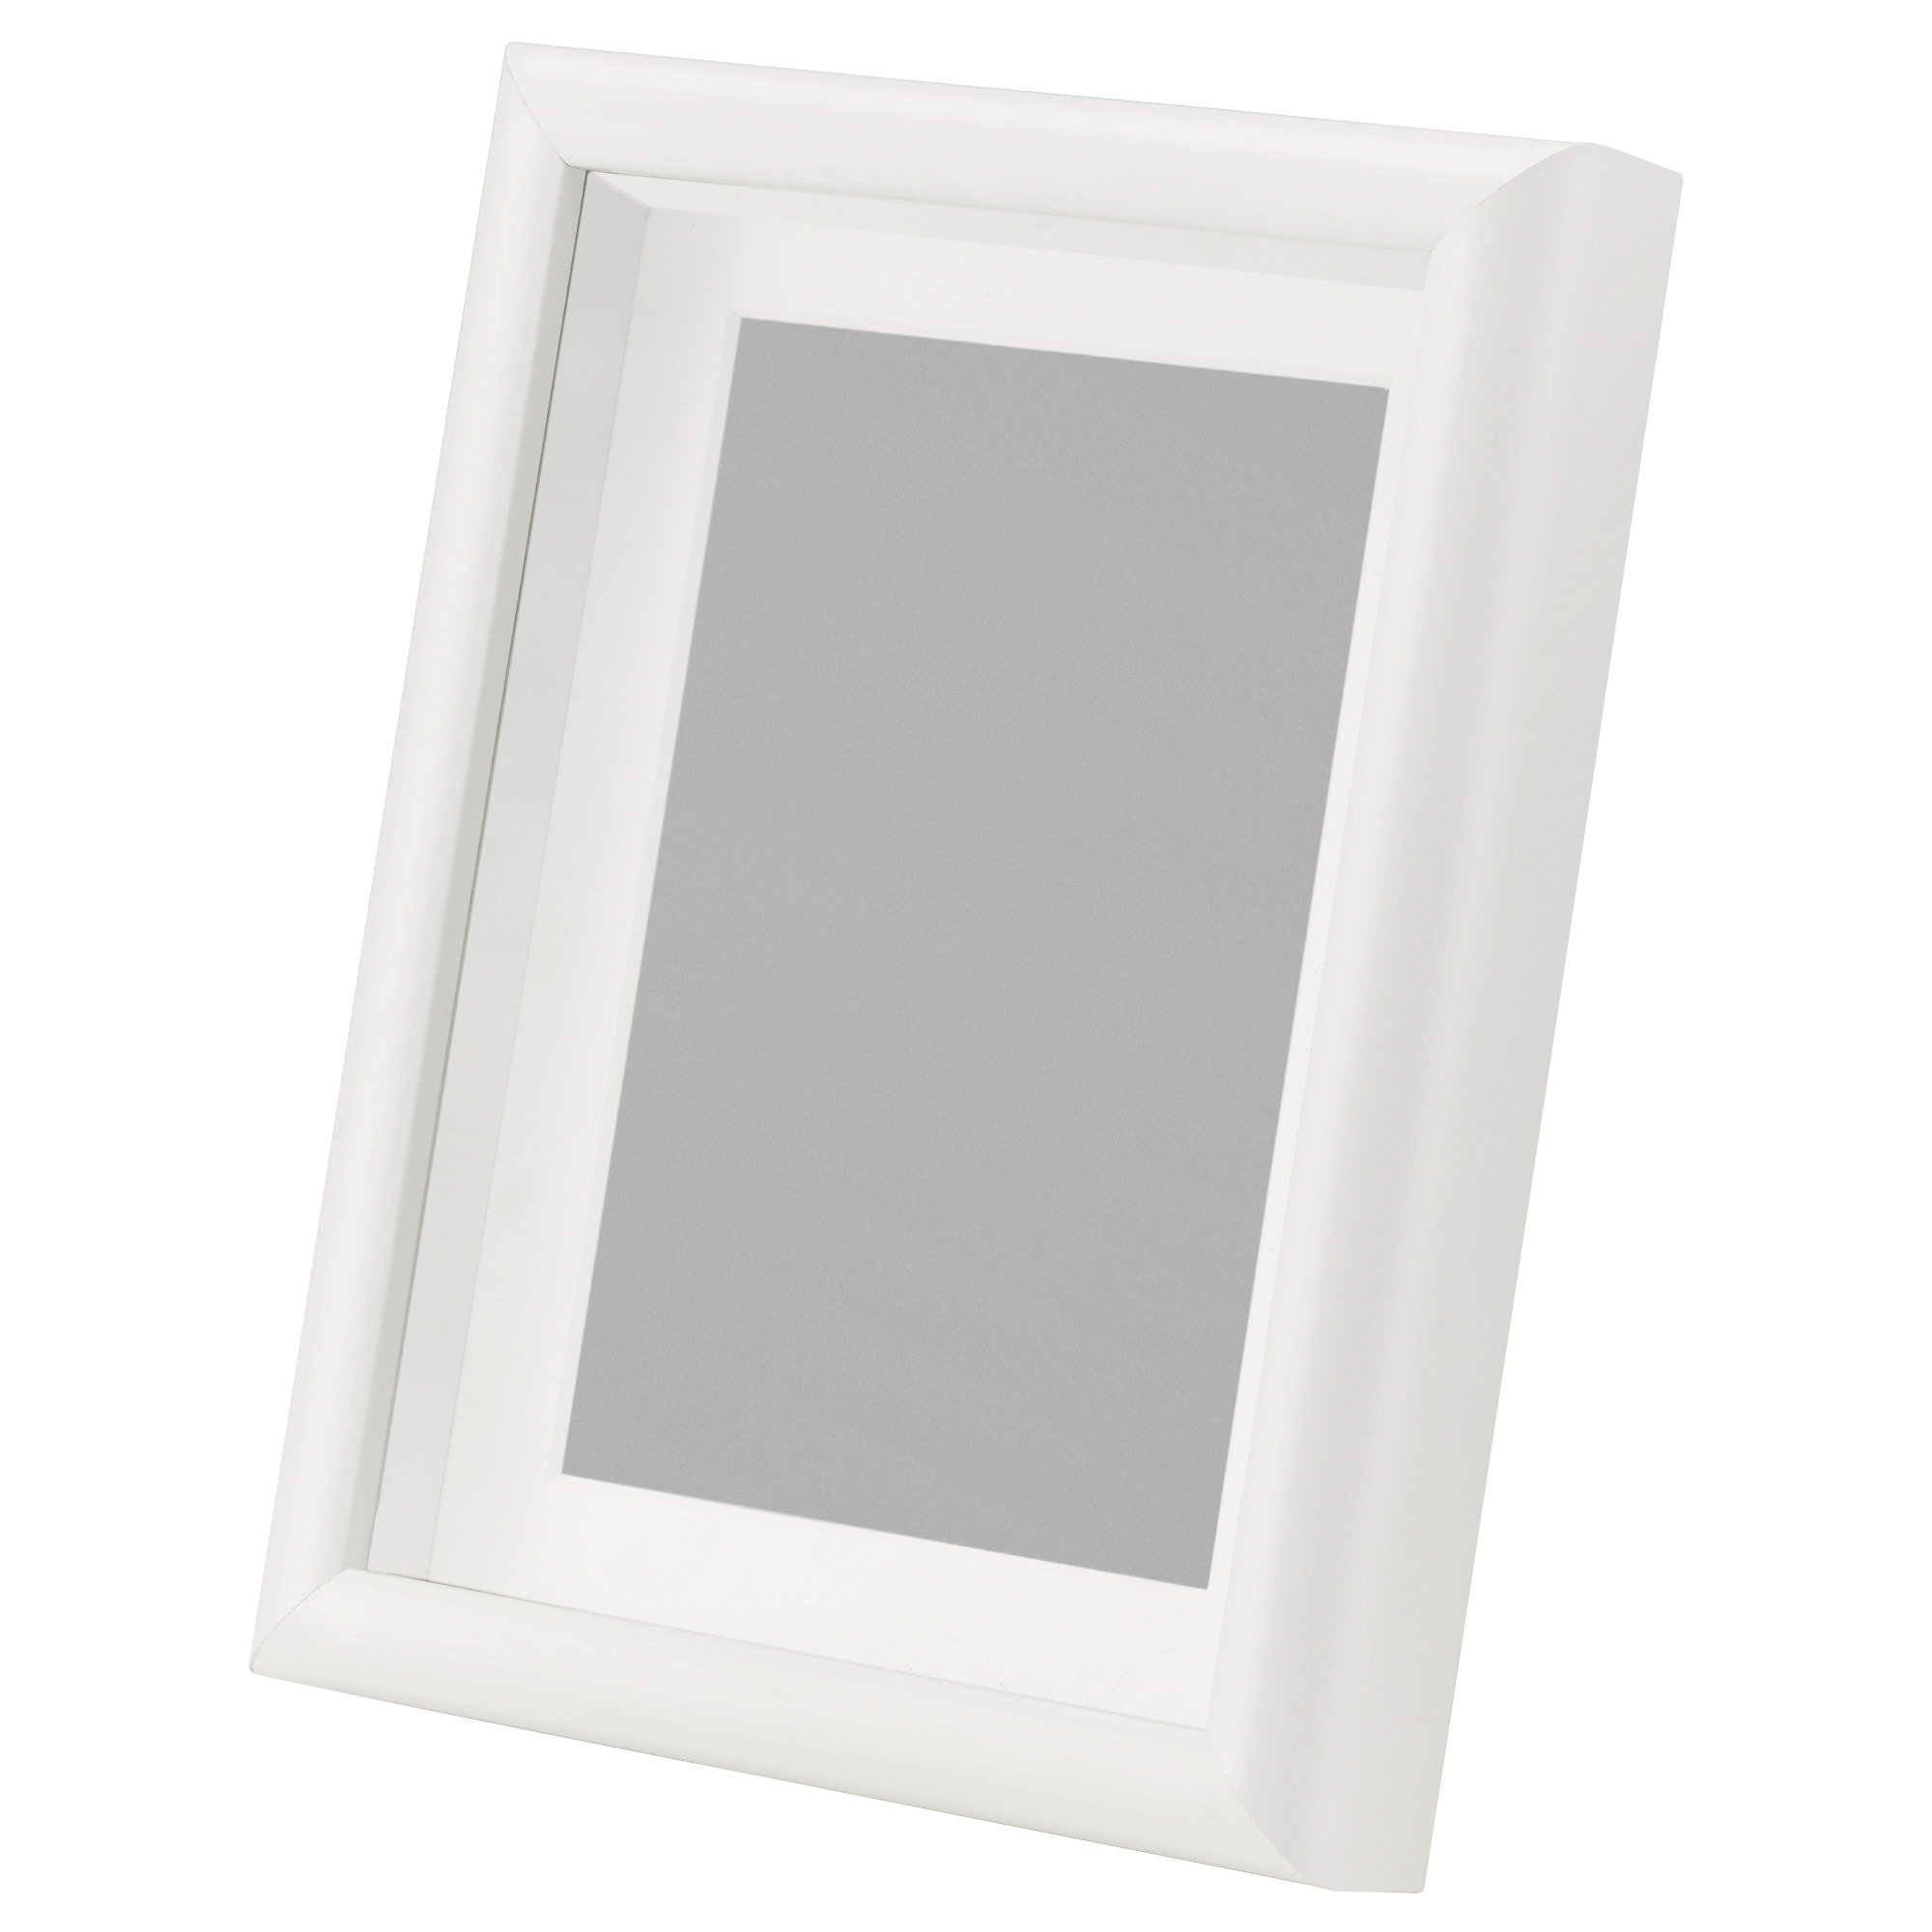 mossebo frame - White Wood Picture Frames